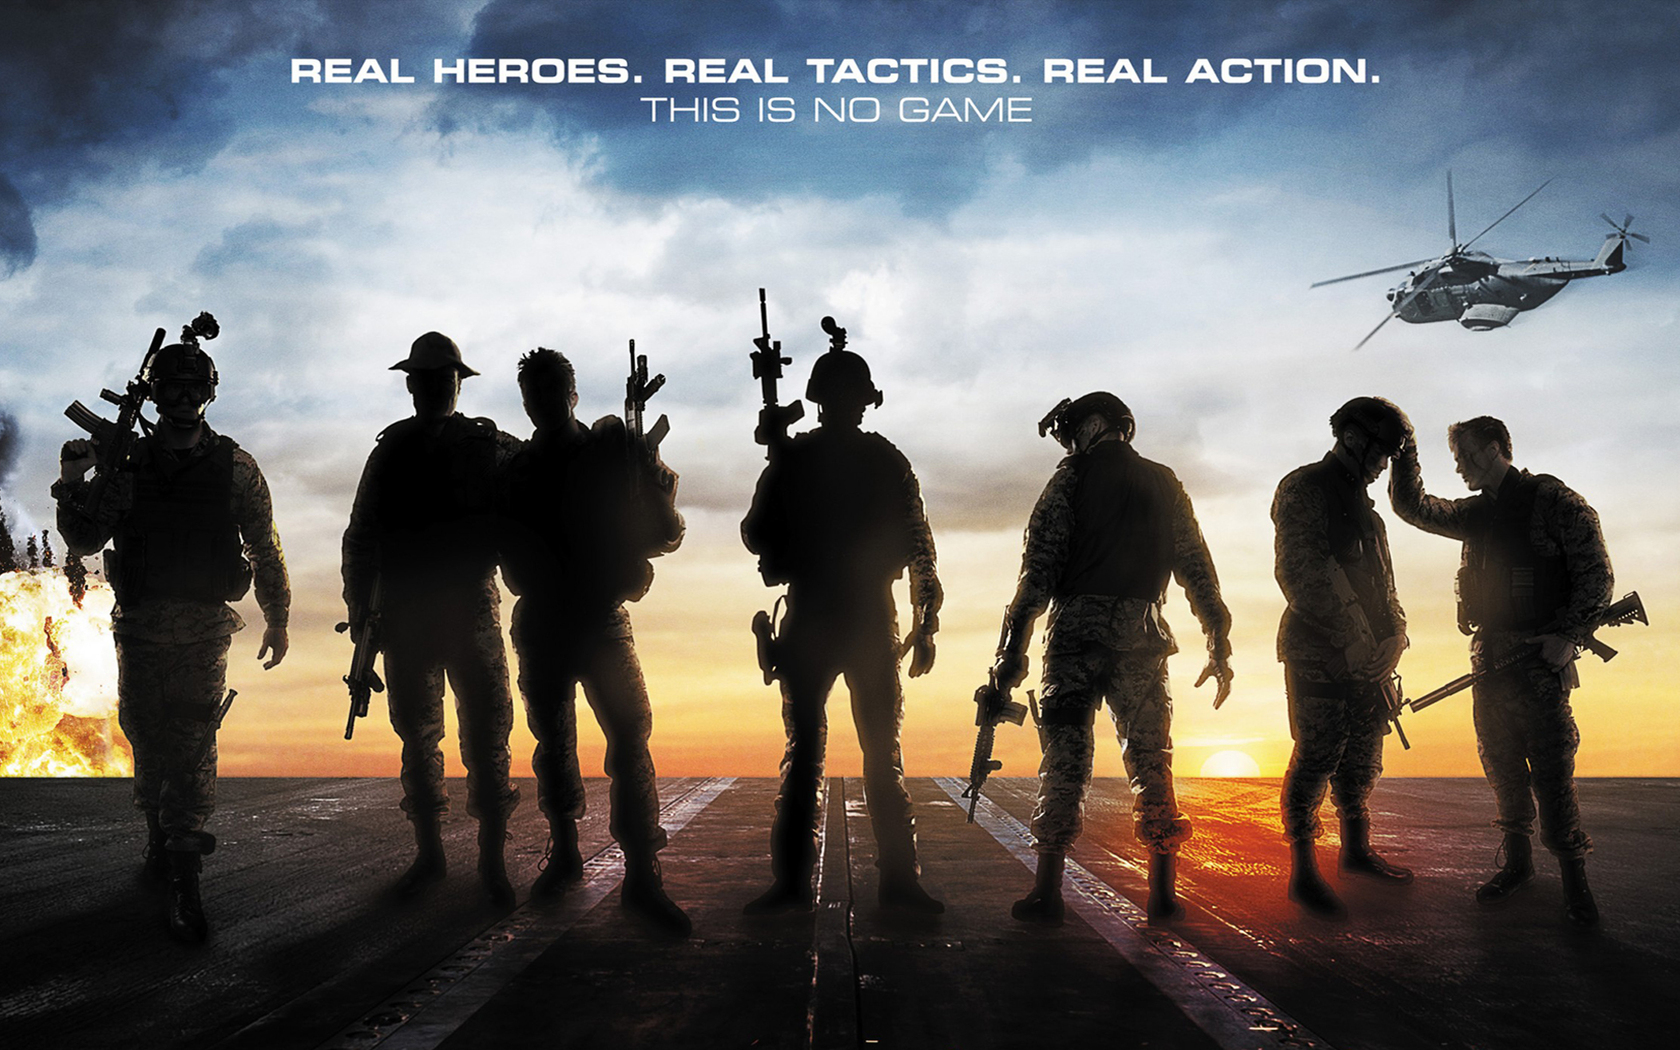 Act of Valor wallpaper 3